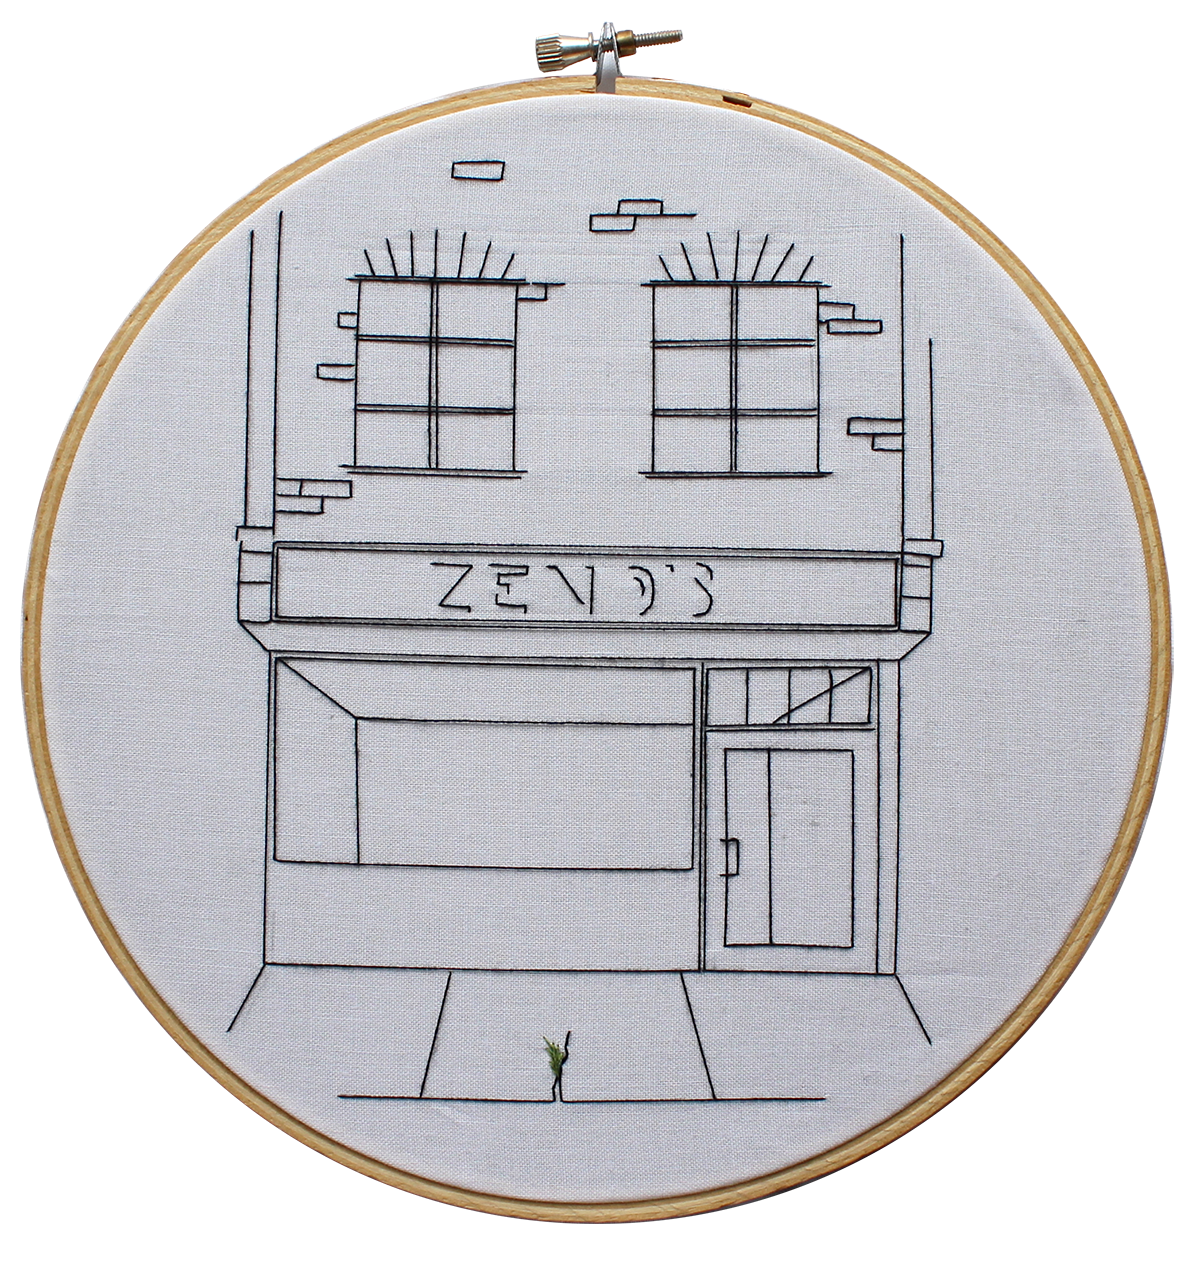 Embroidery of a restaurant's exterior. There is a small crack in the sidewalk, with a aplant beginning to grow from it.